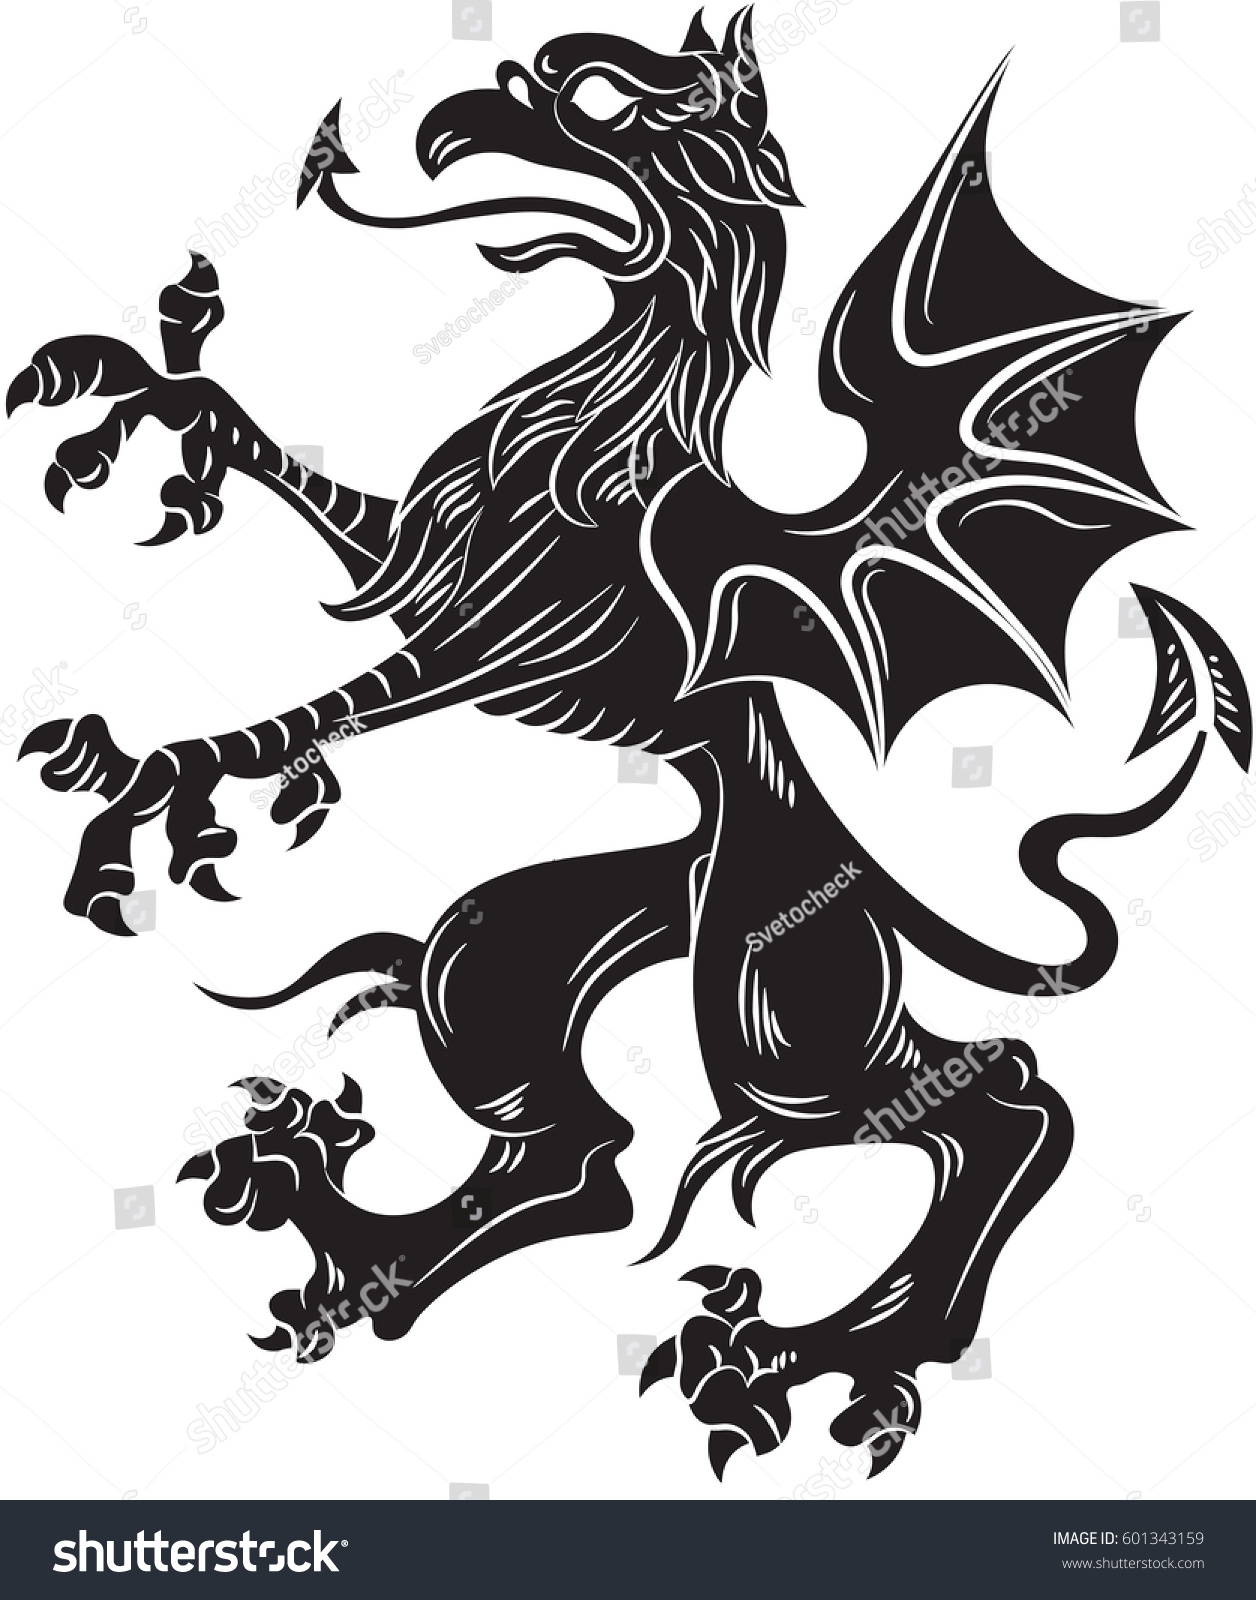 How to breed heraldic dragon - Griffin Heraldry Symbol Vector Illustration Silhouette Or Outline